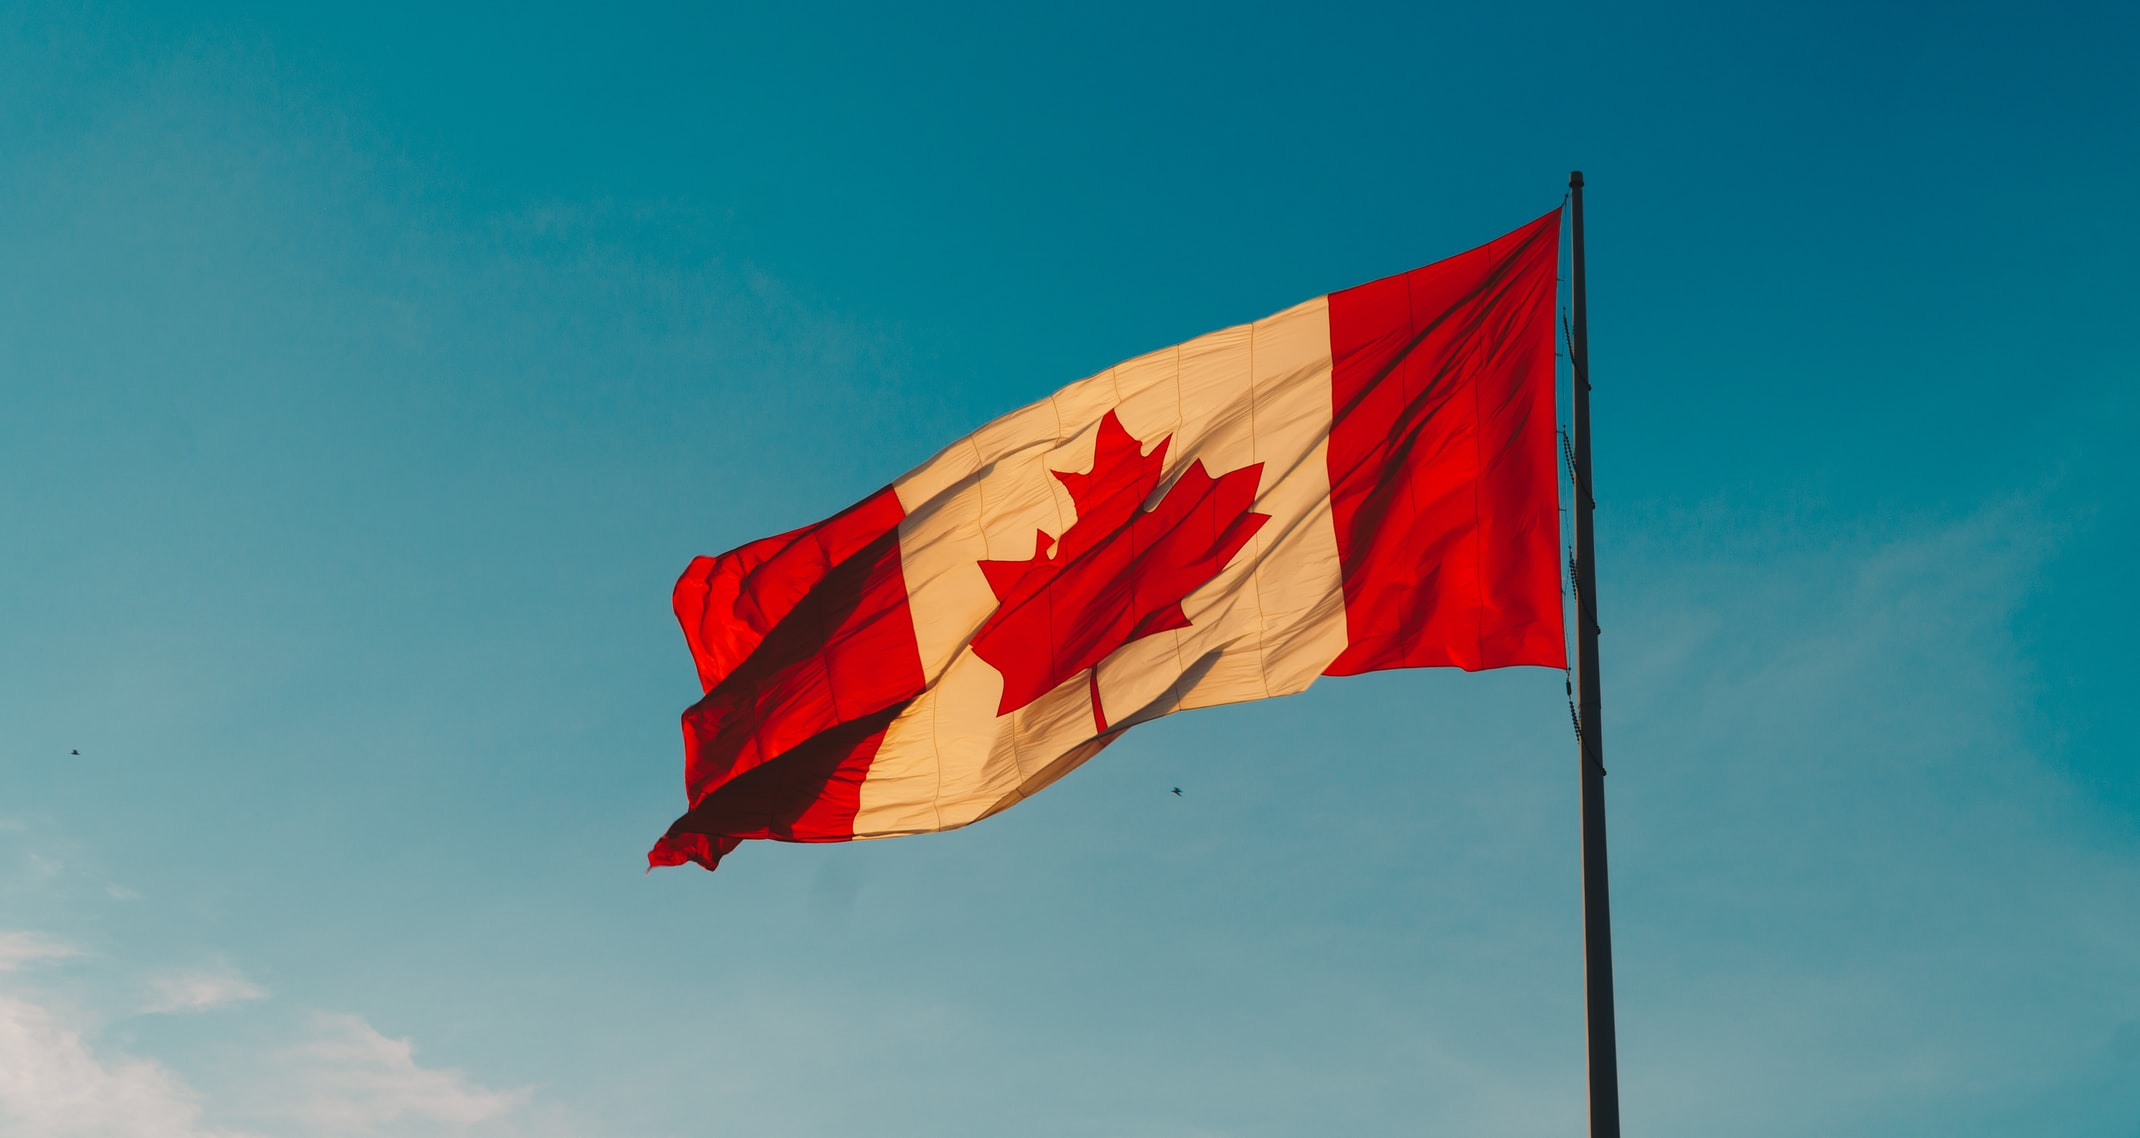 Canada 2.0 Opens New Doors for Brands and Consumers Alike